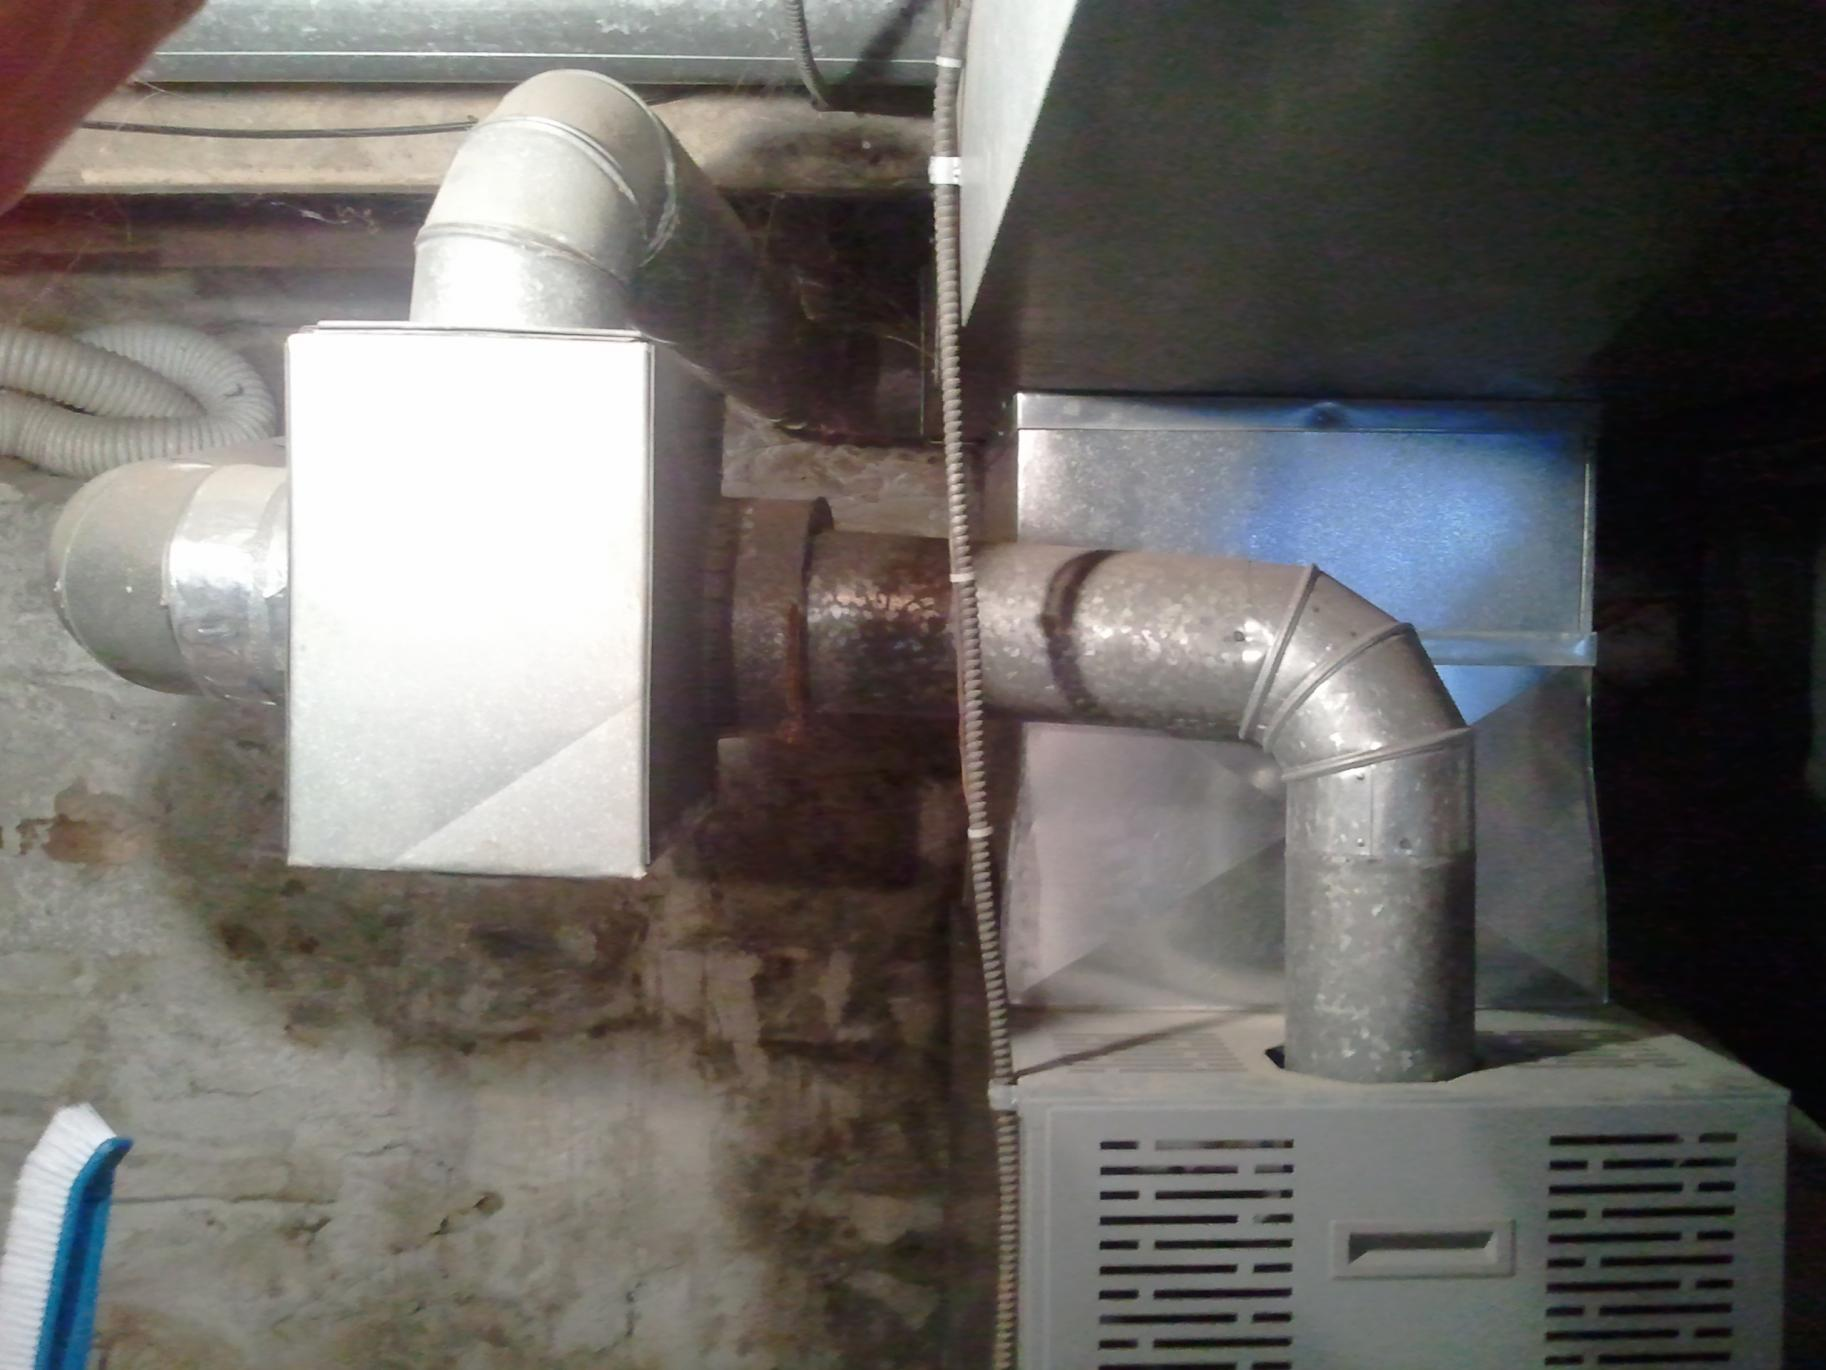 Fresh air duct work for oil furnace-2010-12-07-08.38.48.jpg